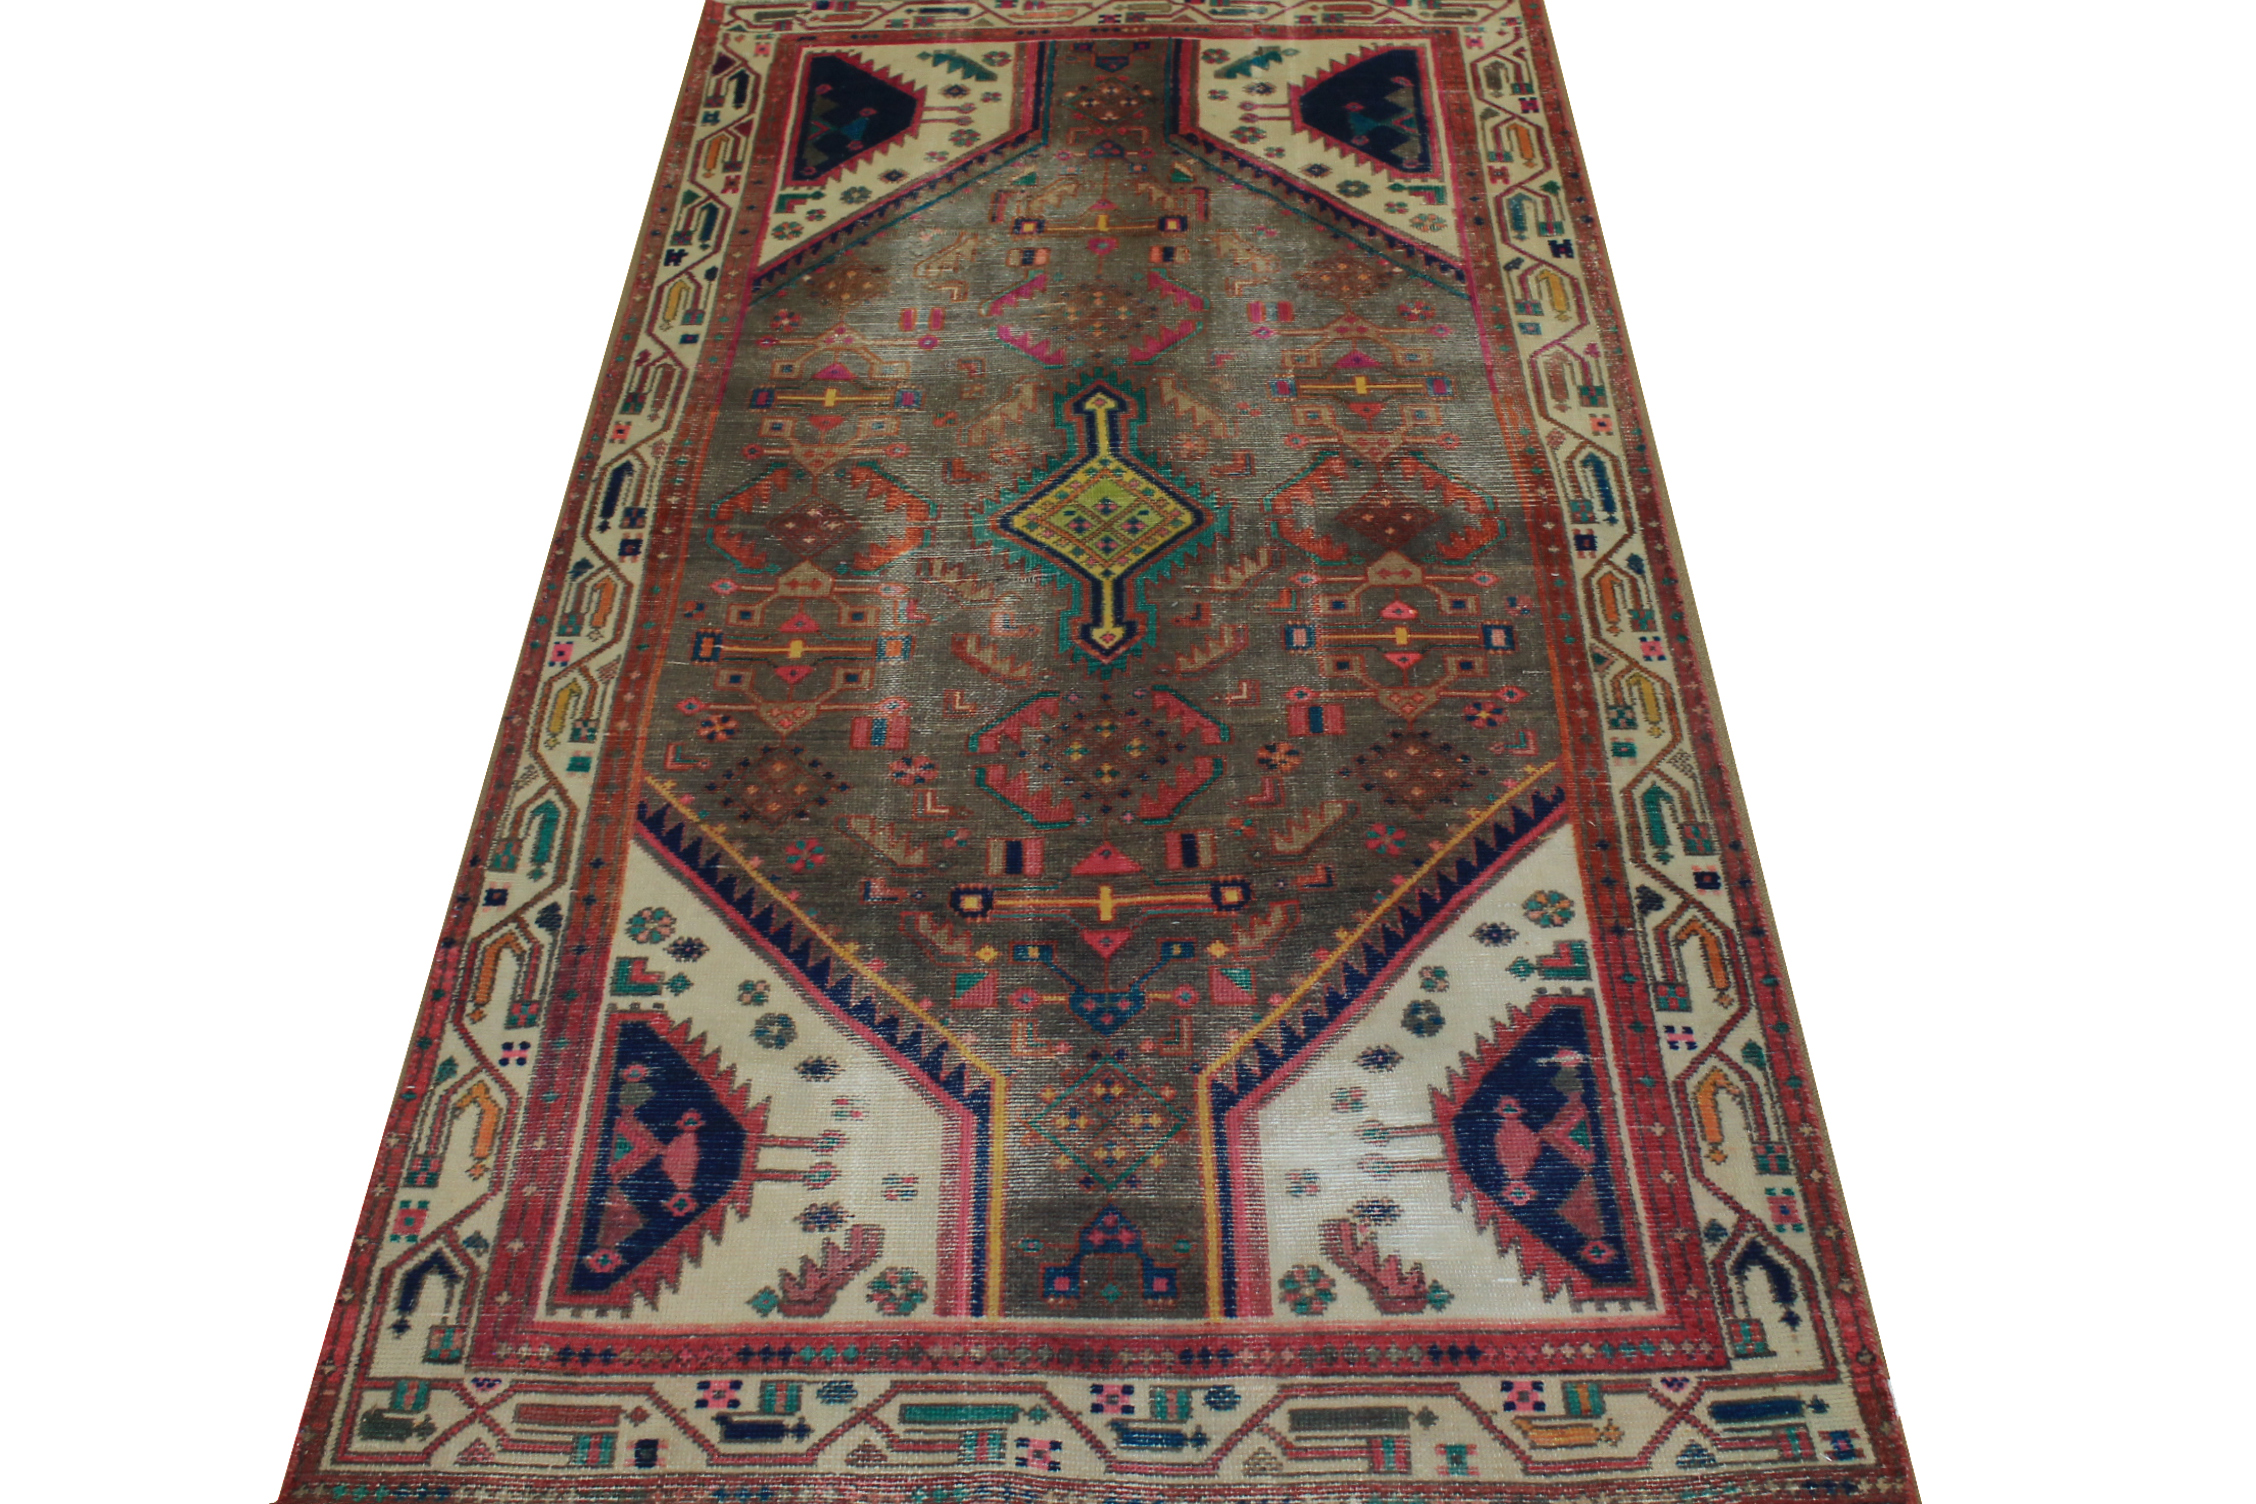 4x6 Vintage Hand Knotted Wool Area Rug - MR024450